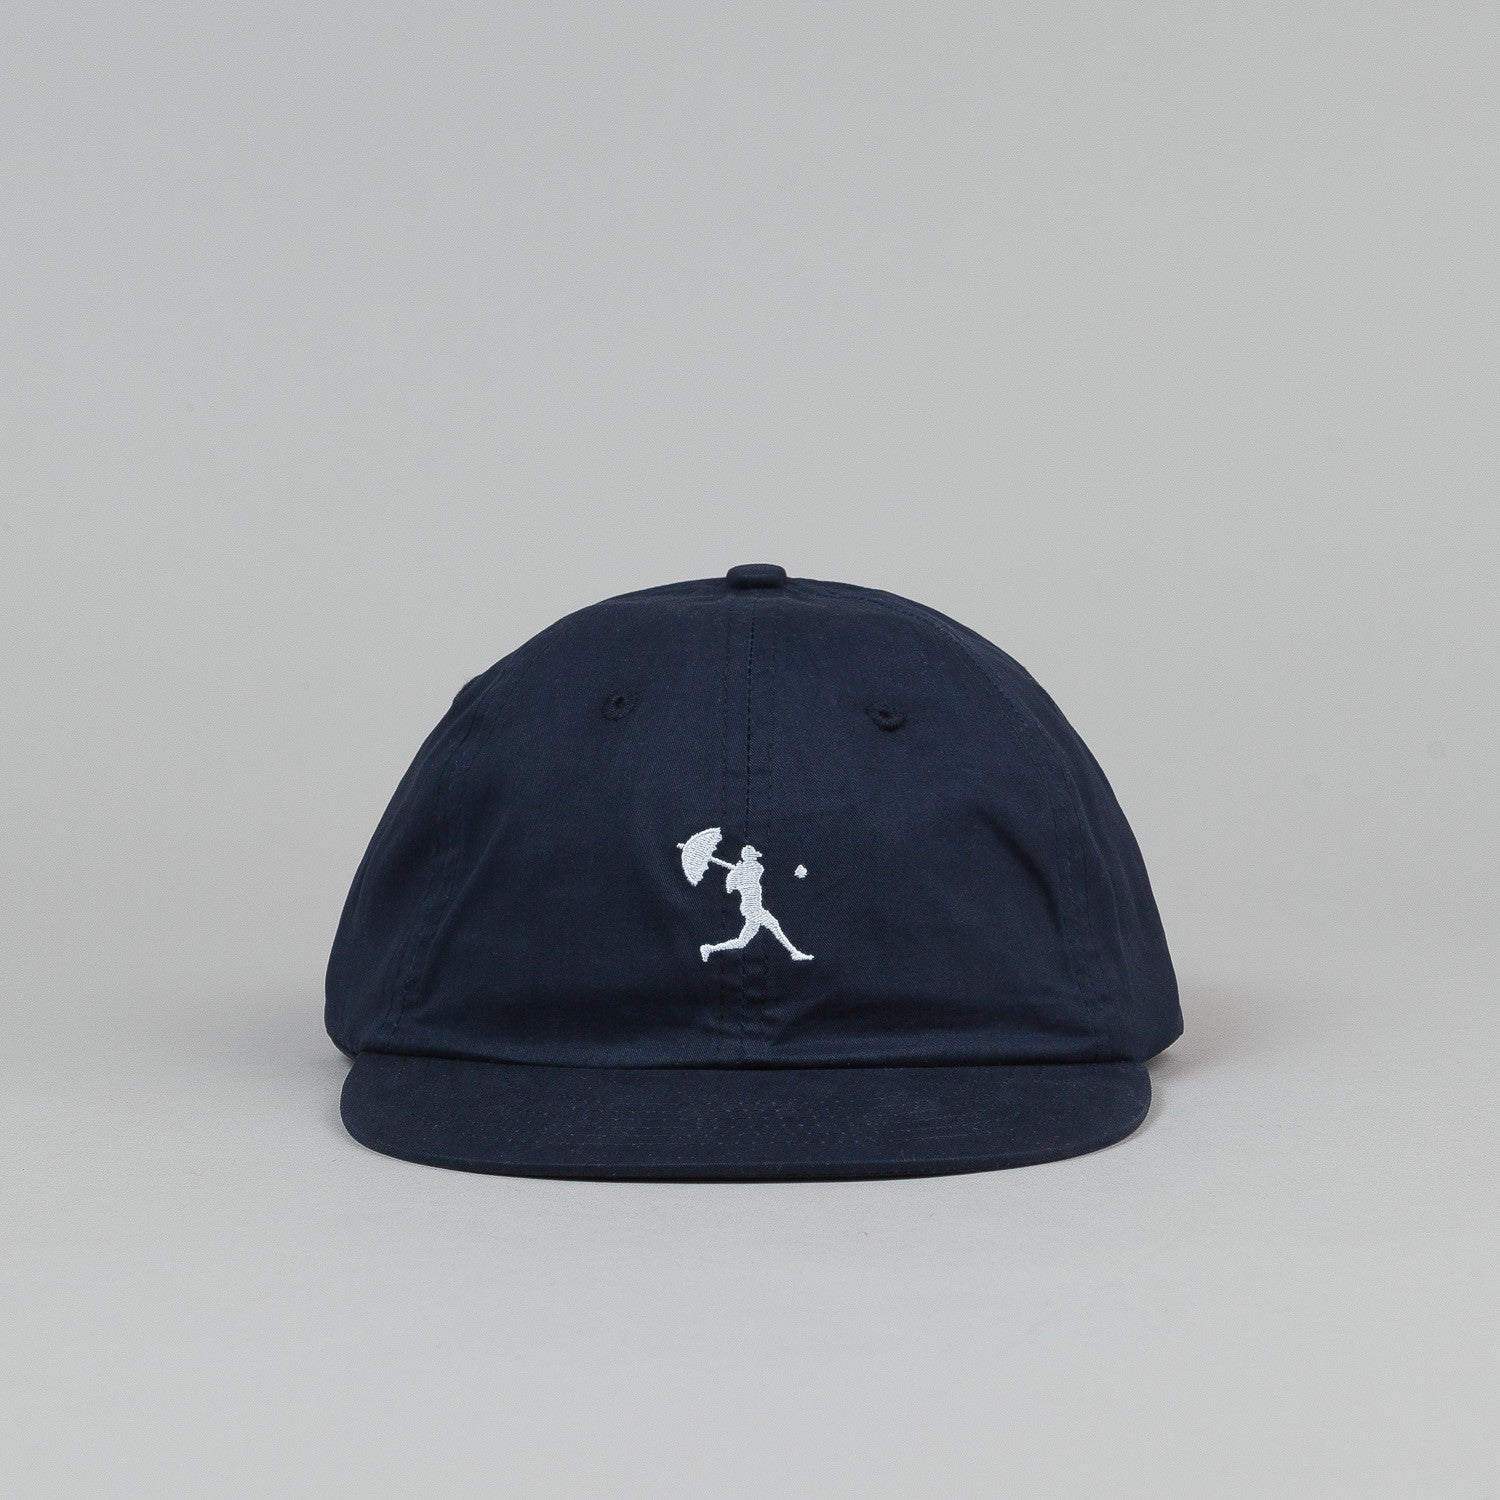 Helas Baller 6 Panel Cap Navy